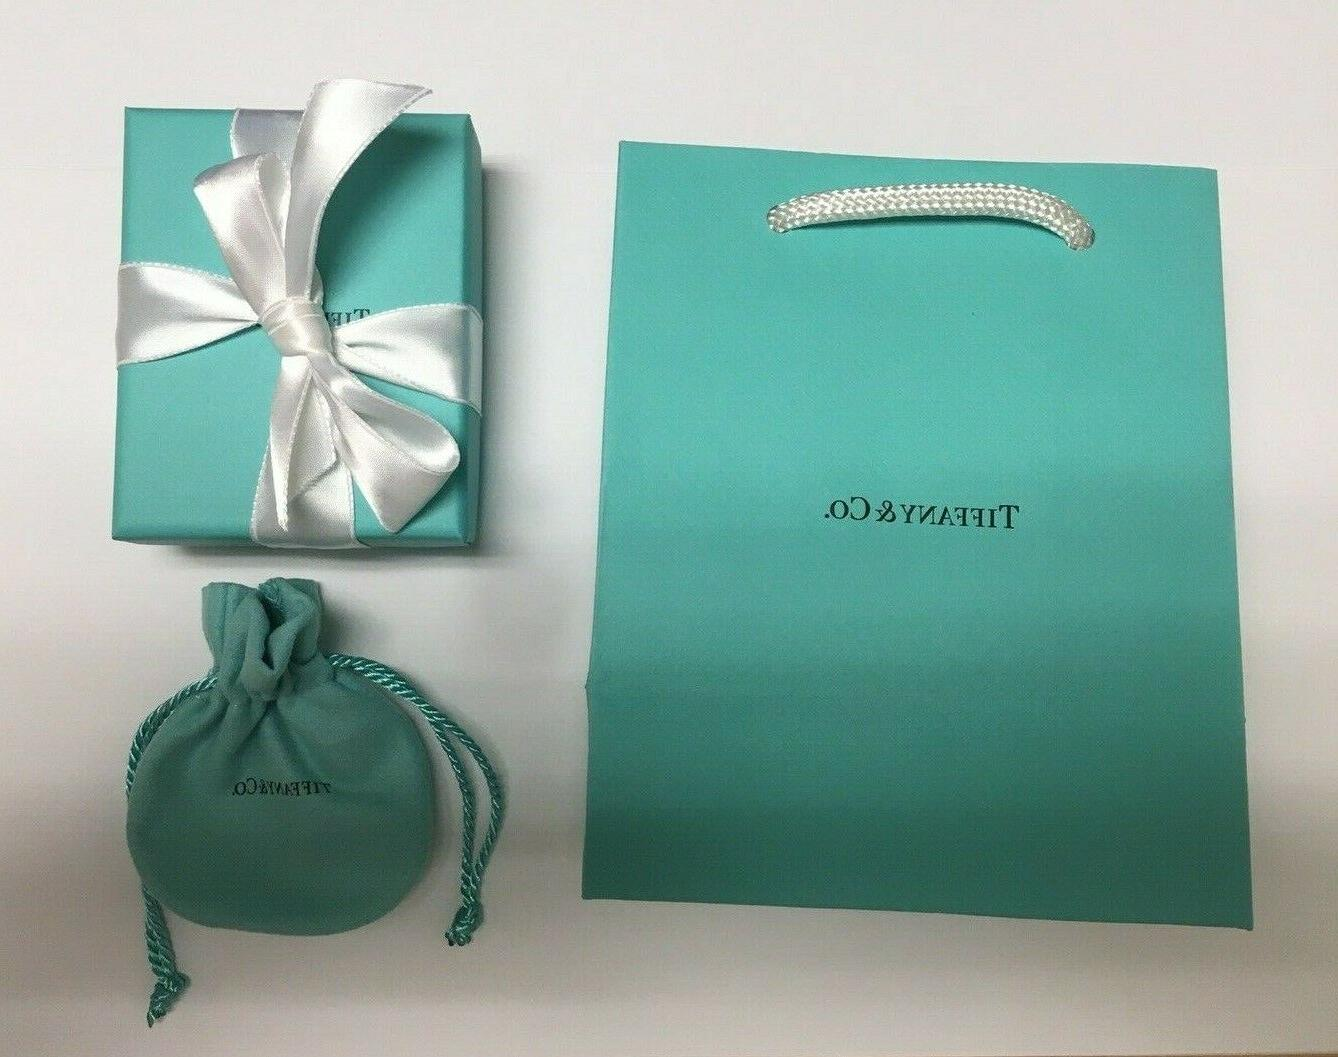 brand new authentic tiffany and co jewelry